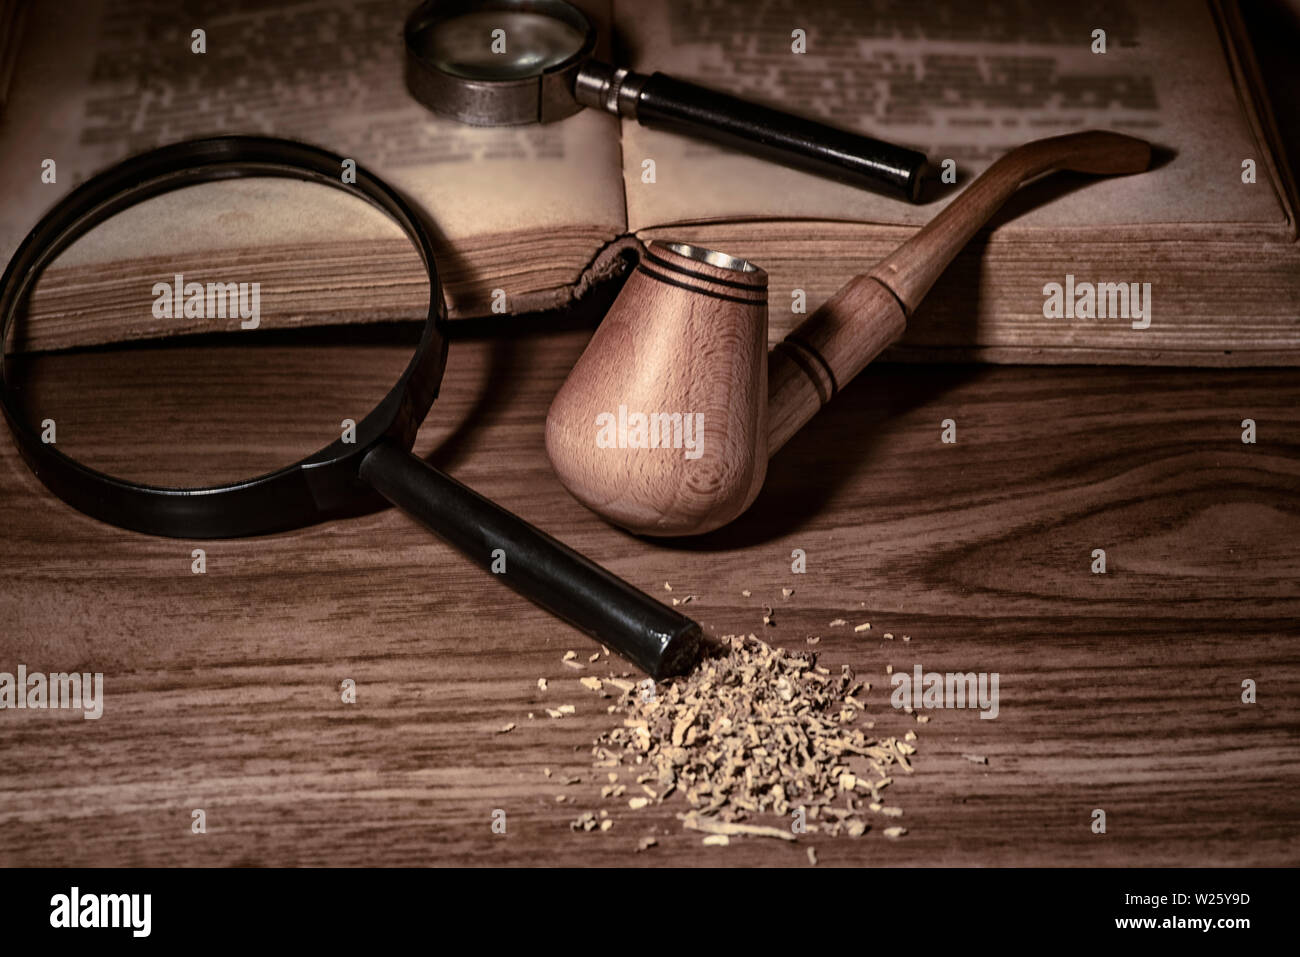 Smoking pipe with tobacco leaves on wooden background.wooden background.Wooden pipe with smoke on heap of chopped dried tobacco leaves against black b - Stock Image